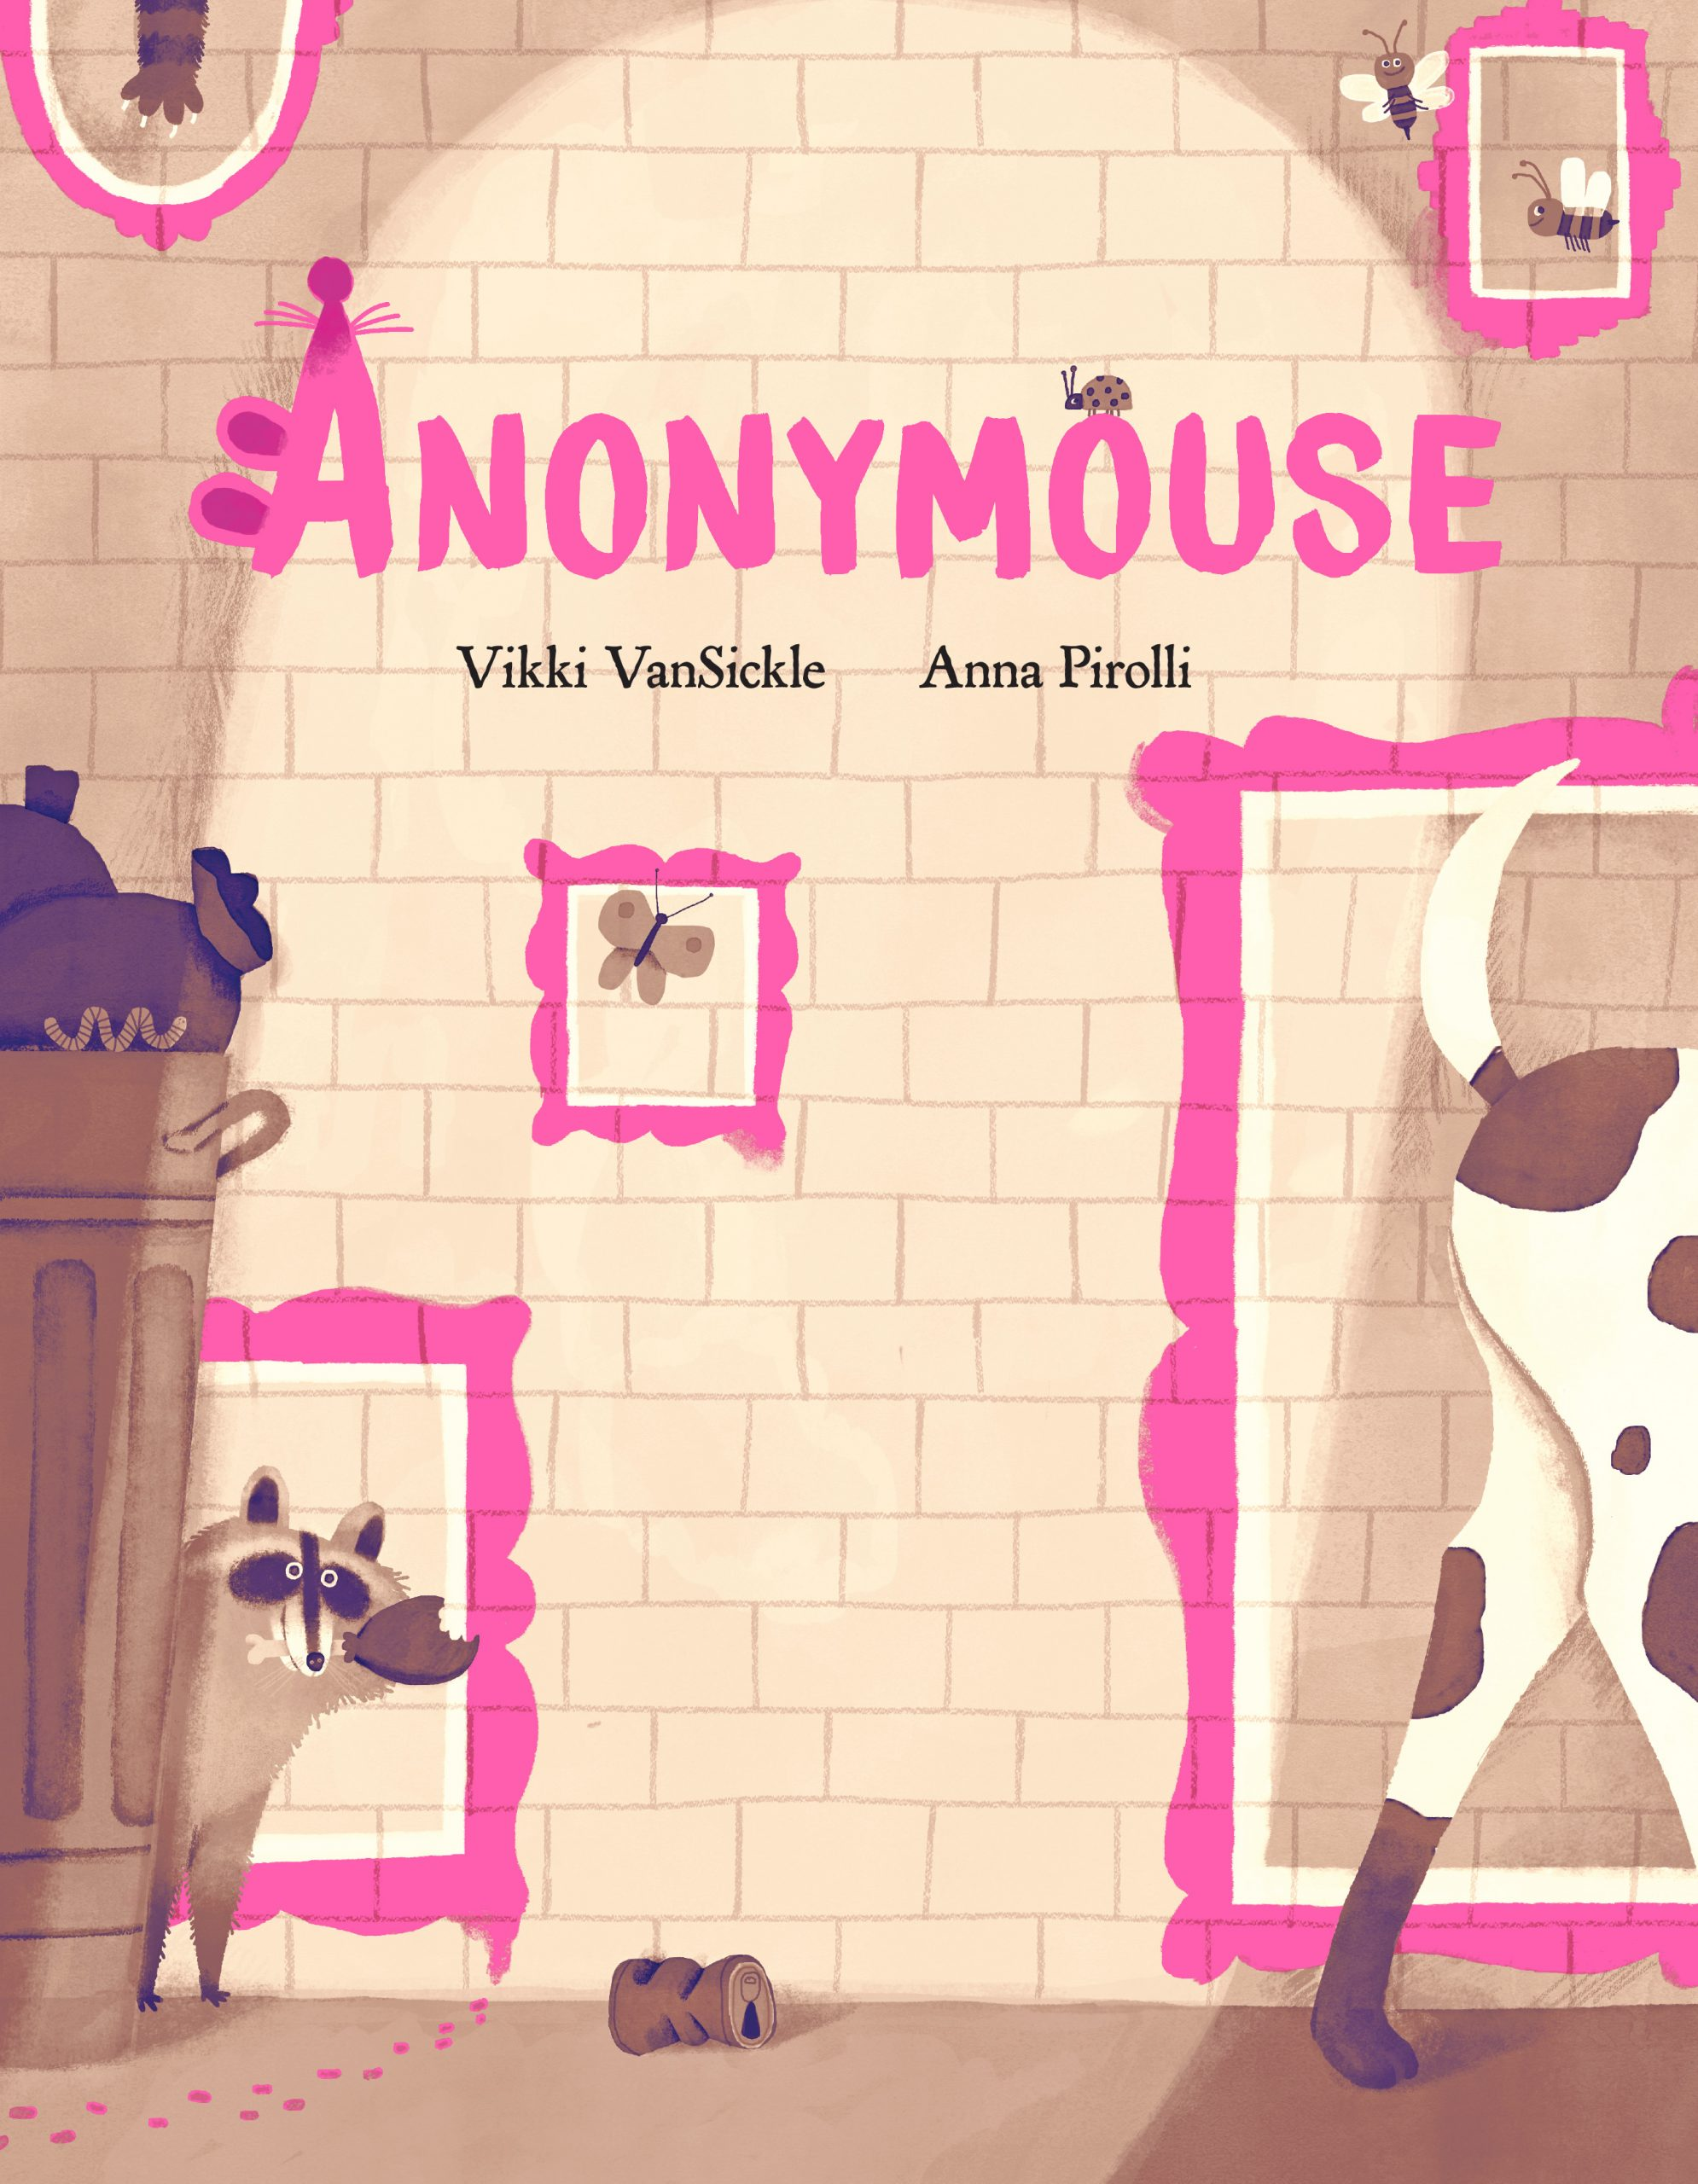 The cover of the picture book Anonymouse, which shows city animals looking confused in paintings of picture frames.